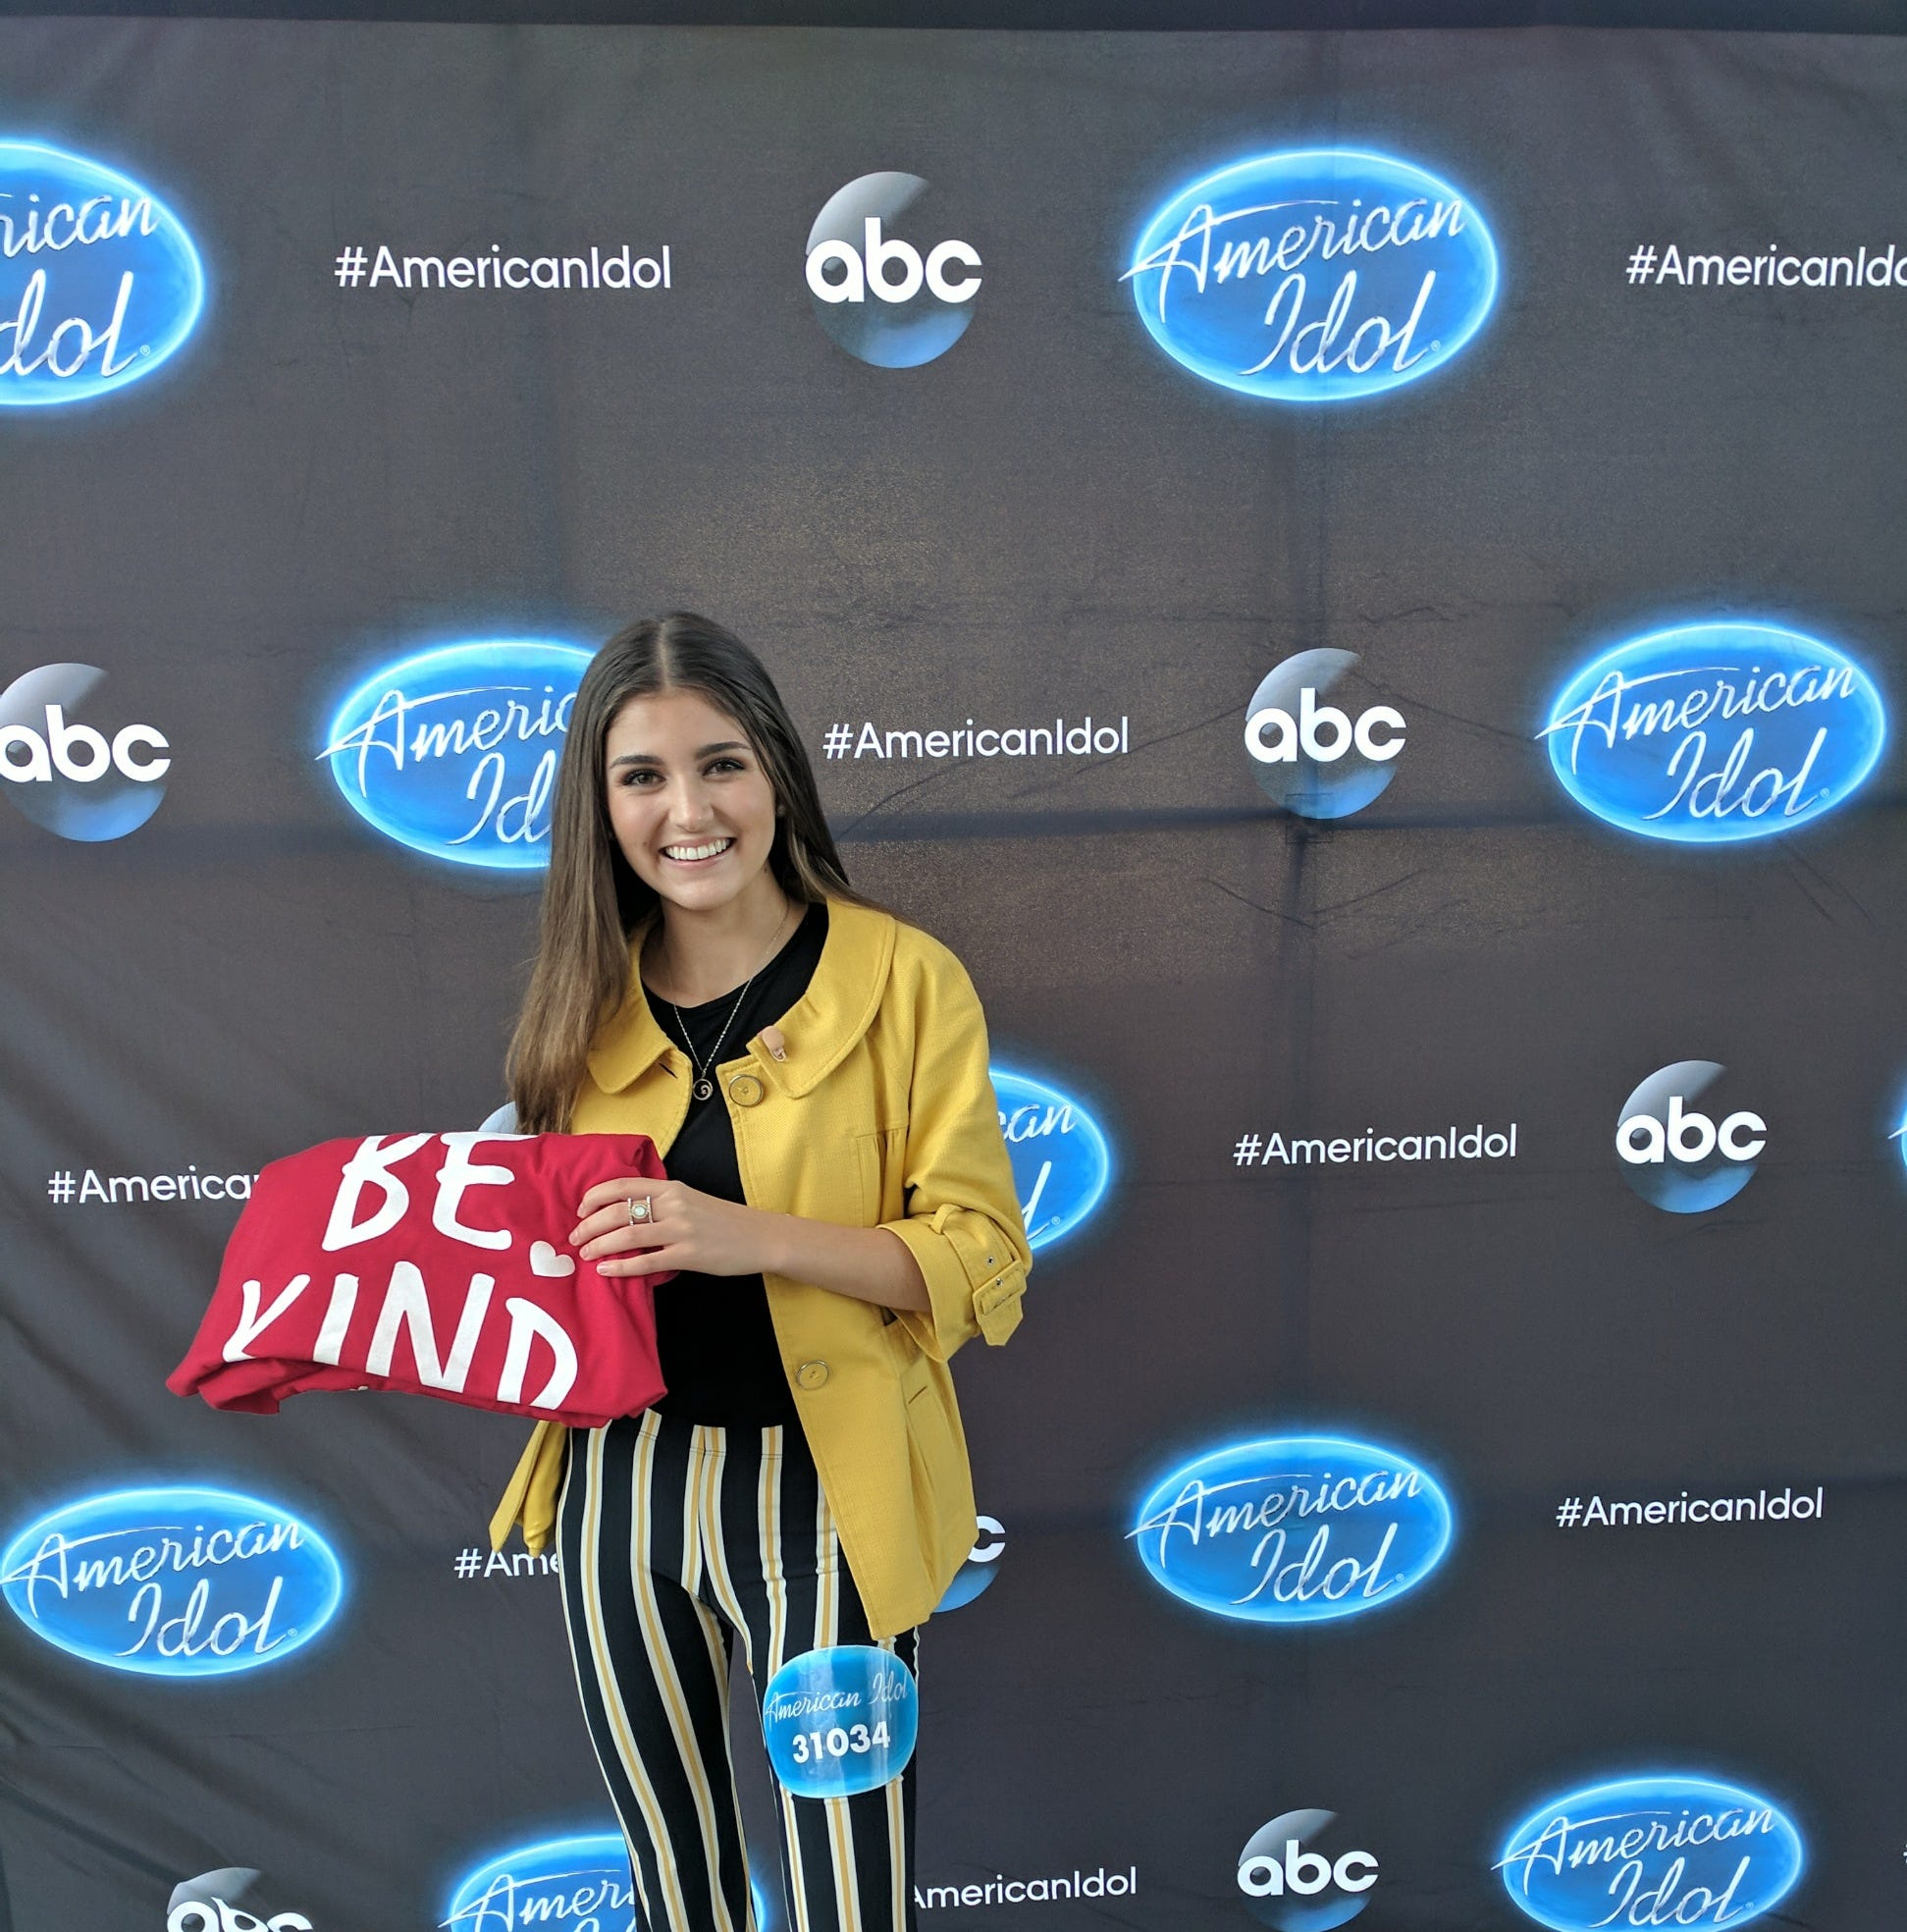 Oshkosh native Franki Moscato will appear on this season of 'American Idol'